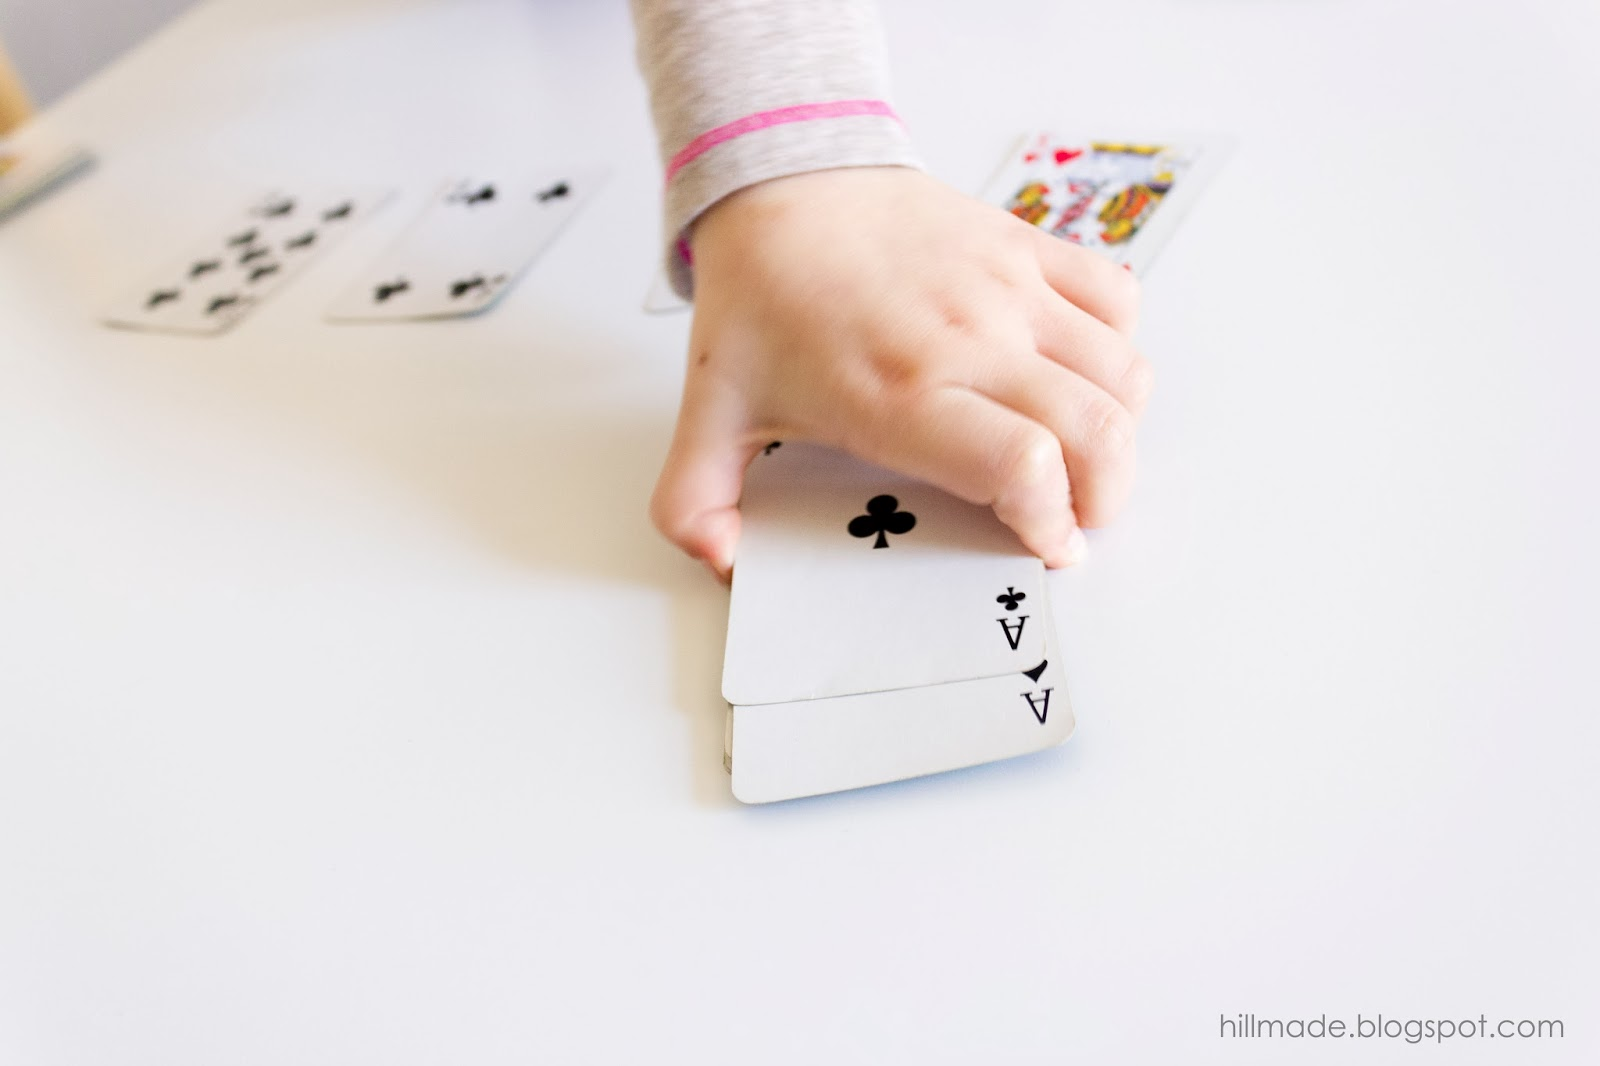 Steal the Pile | hillmade.blogspot.com | A fun and simple matching game for kids of all ages!